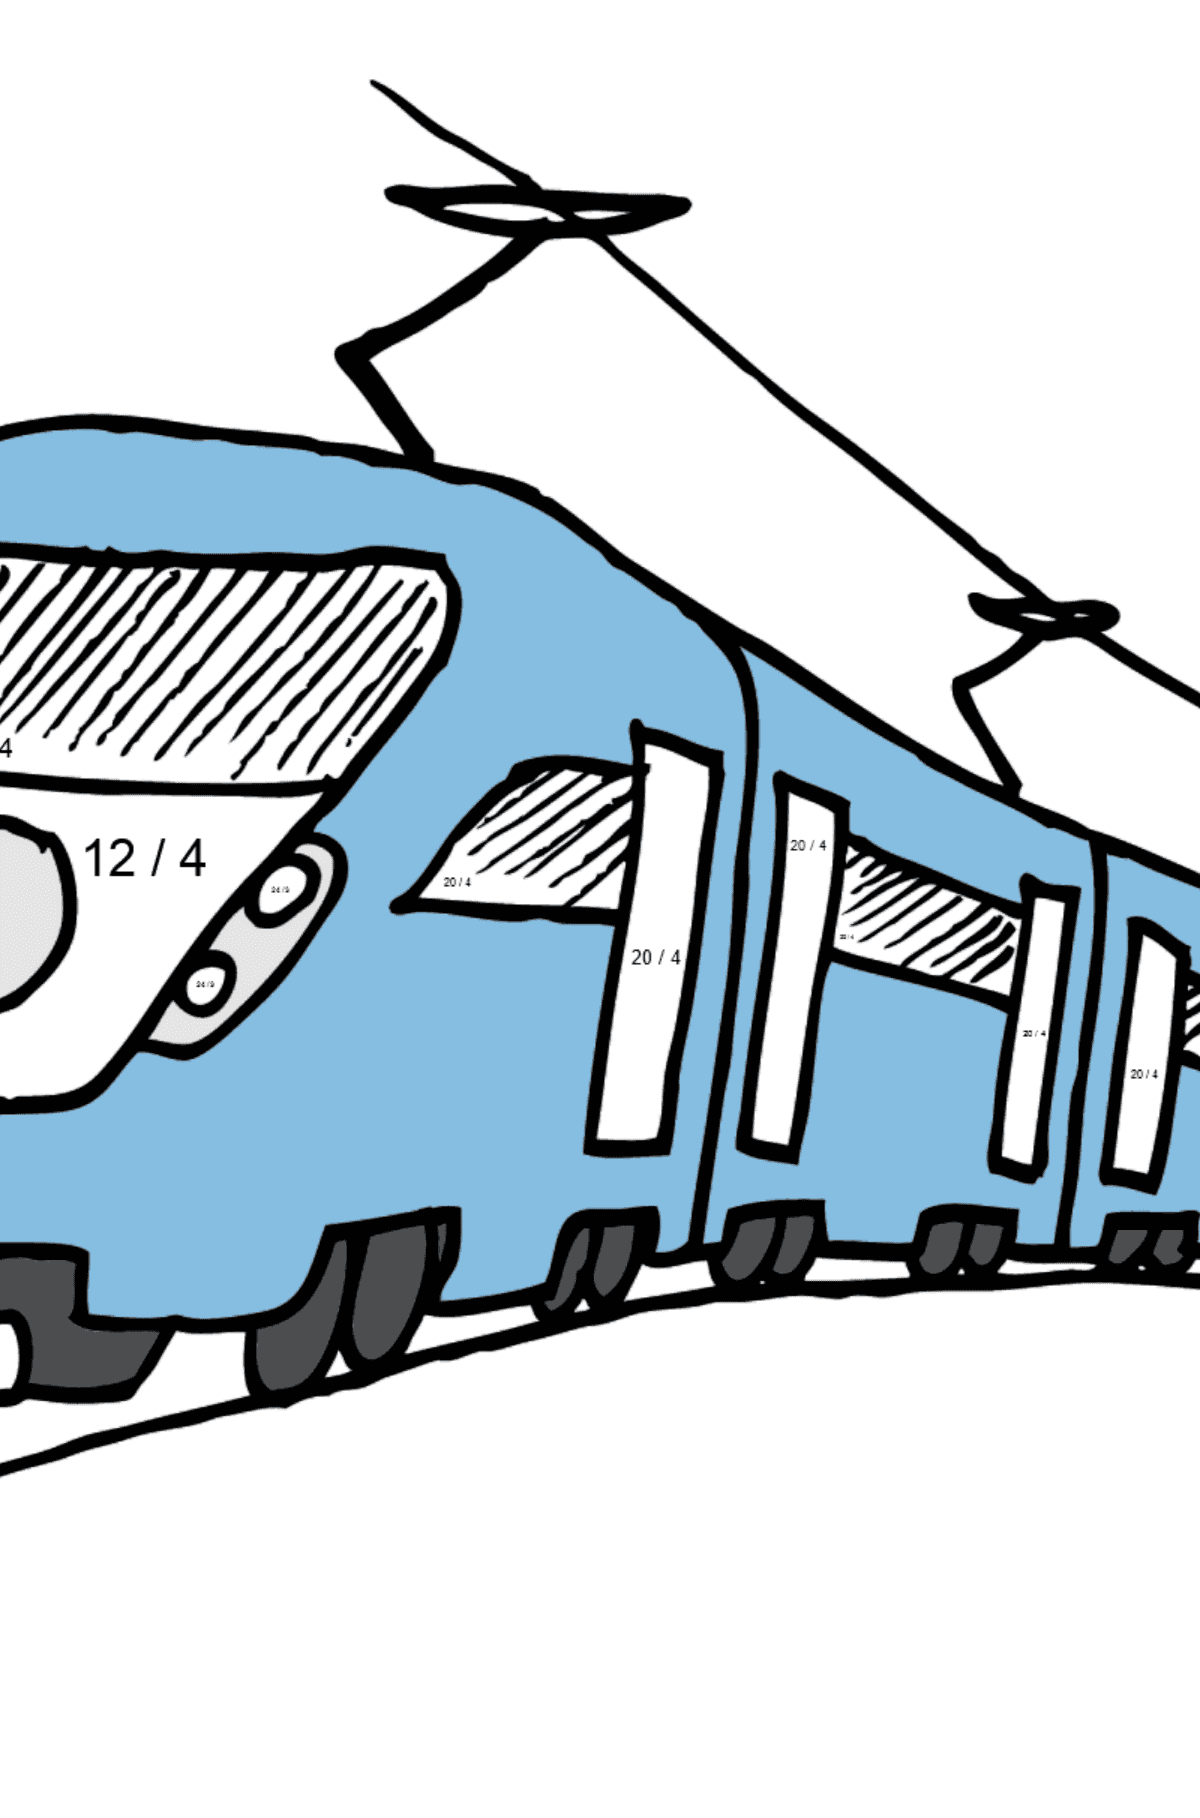 Coloring Page - A Passenger Train - Math Coloring - Division for Kids